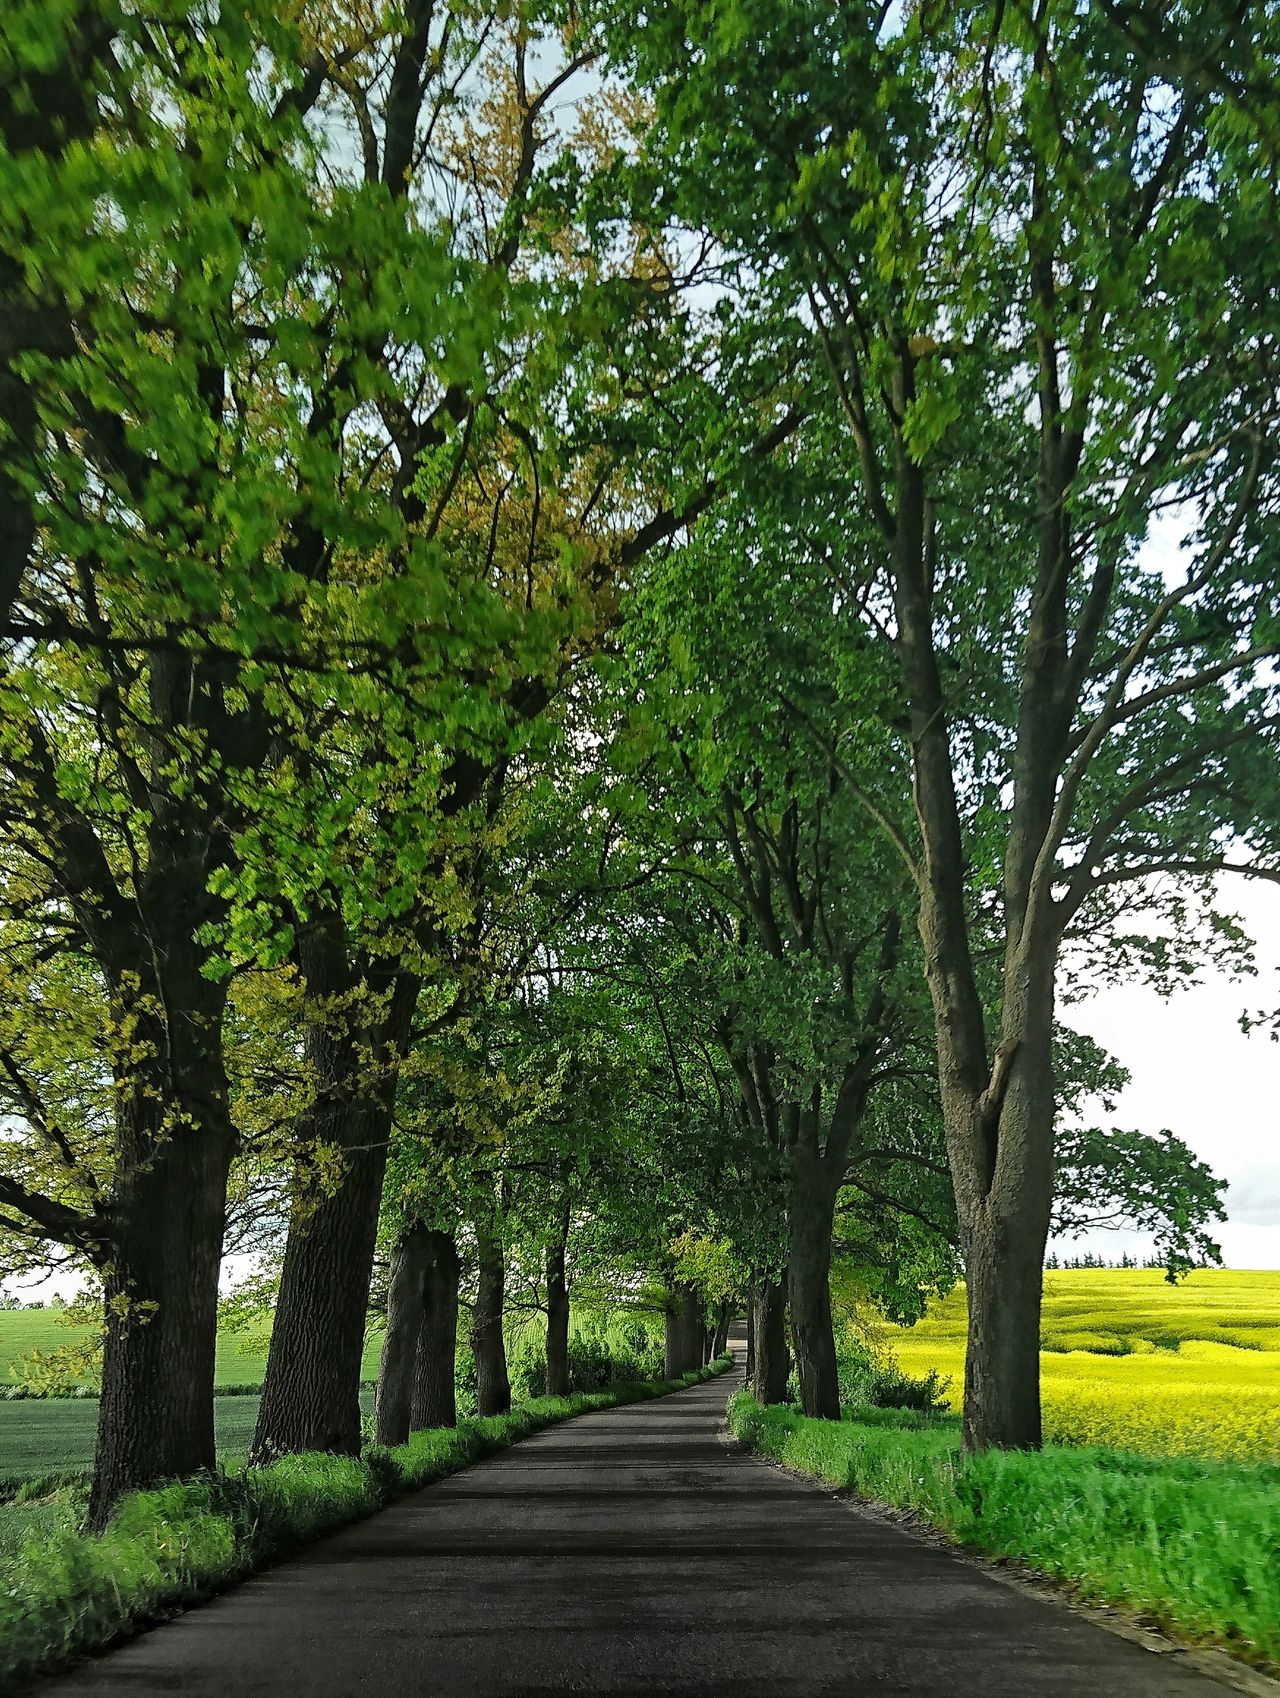 Warmia Poland Polska Xperiaxz Beauty In Nature No People Tree The Way Forward Nature Outdoors Green Color Tranquility Beauty In Nature Landscape Scenics Sky Road Road Trees